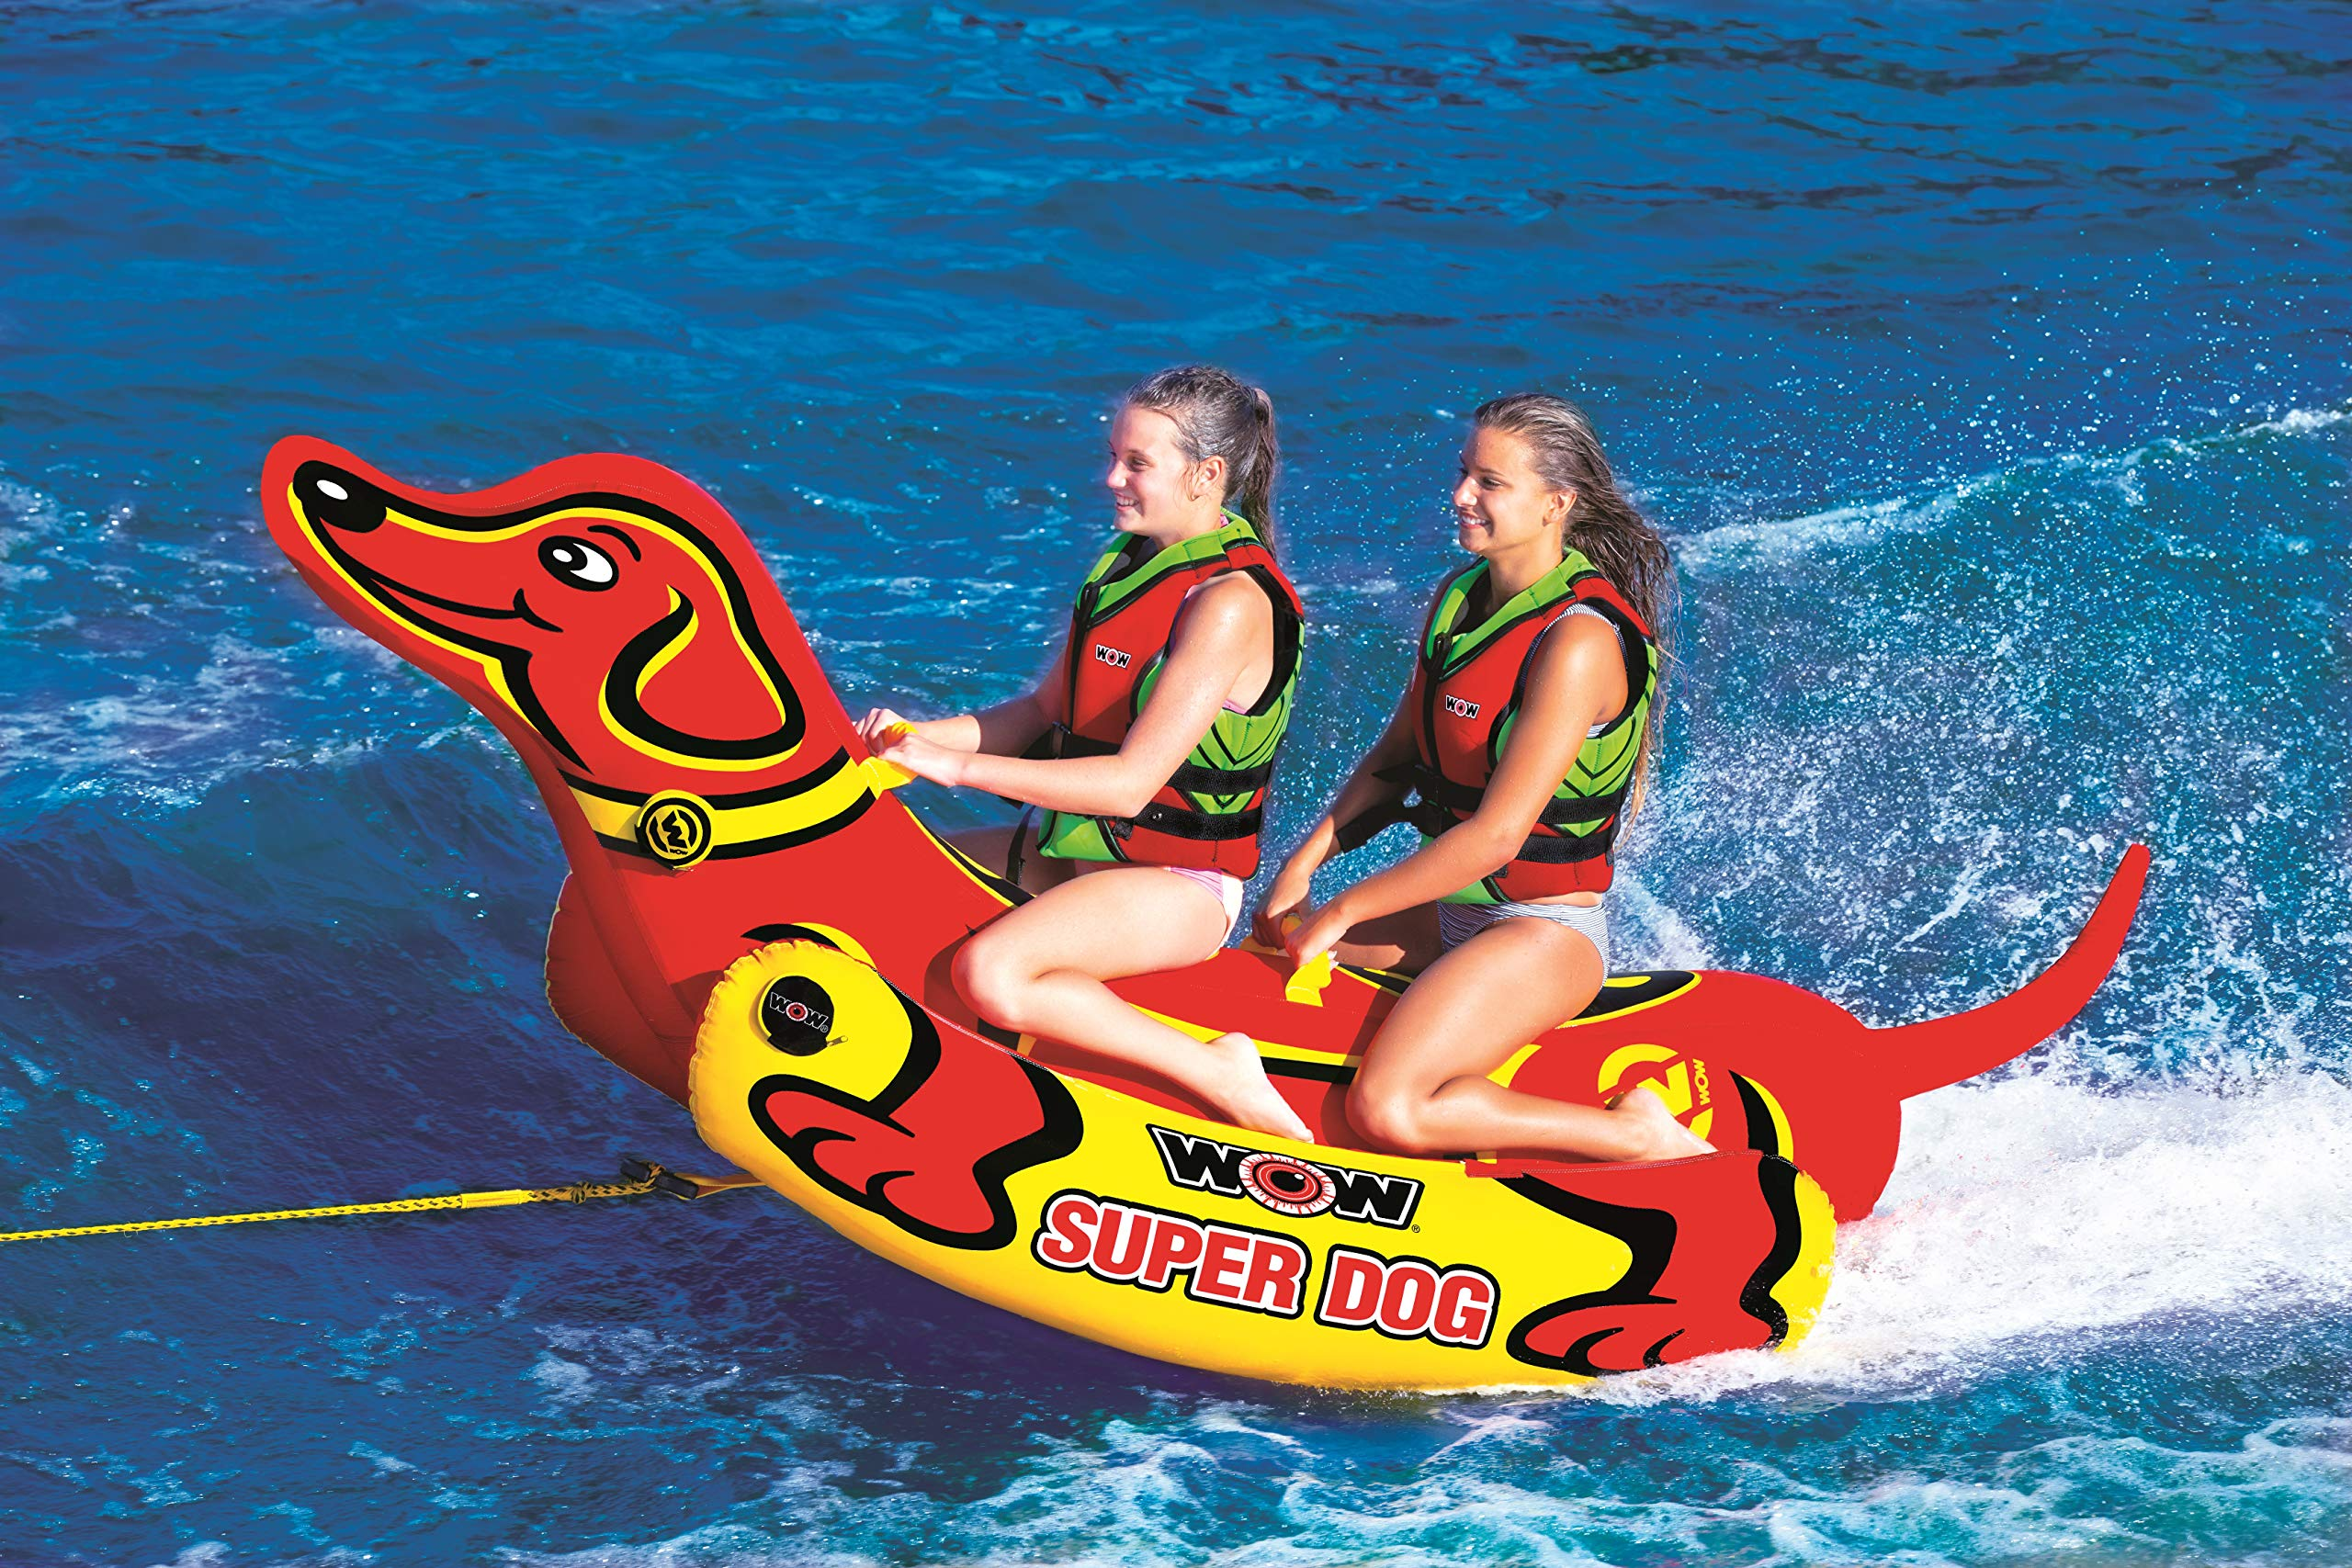 WOW World of Watersports Super Dog 2P Towable by WOW World of Watersports